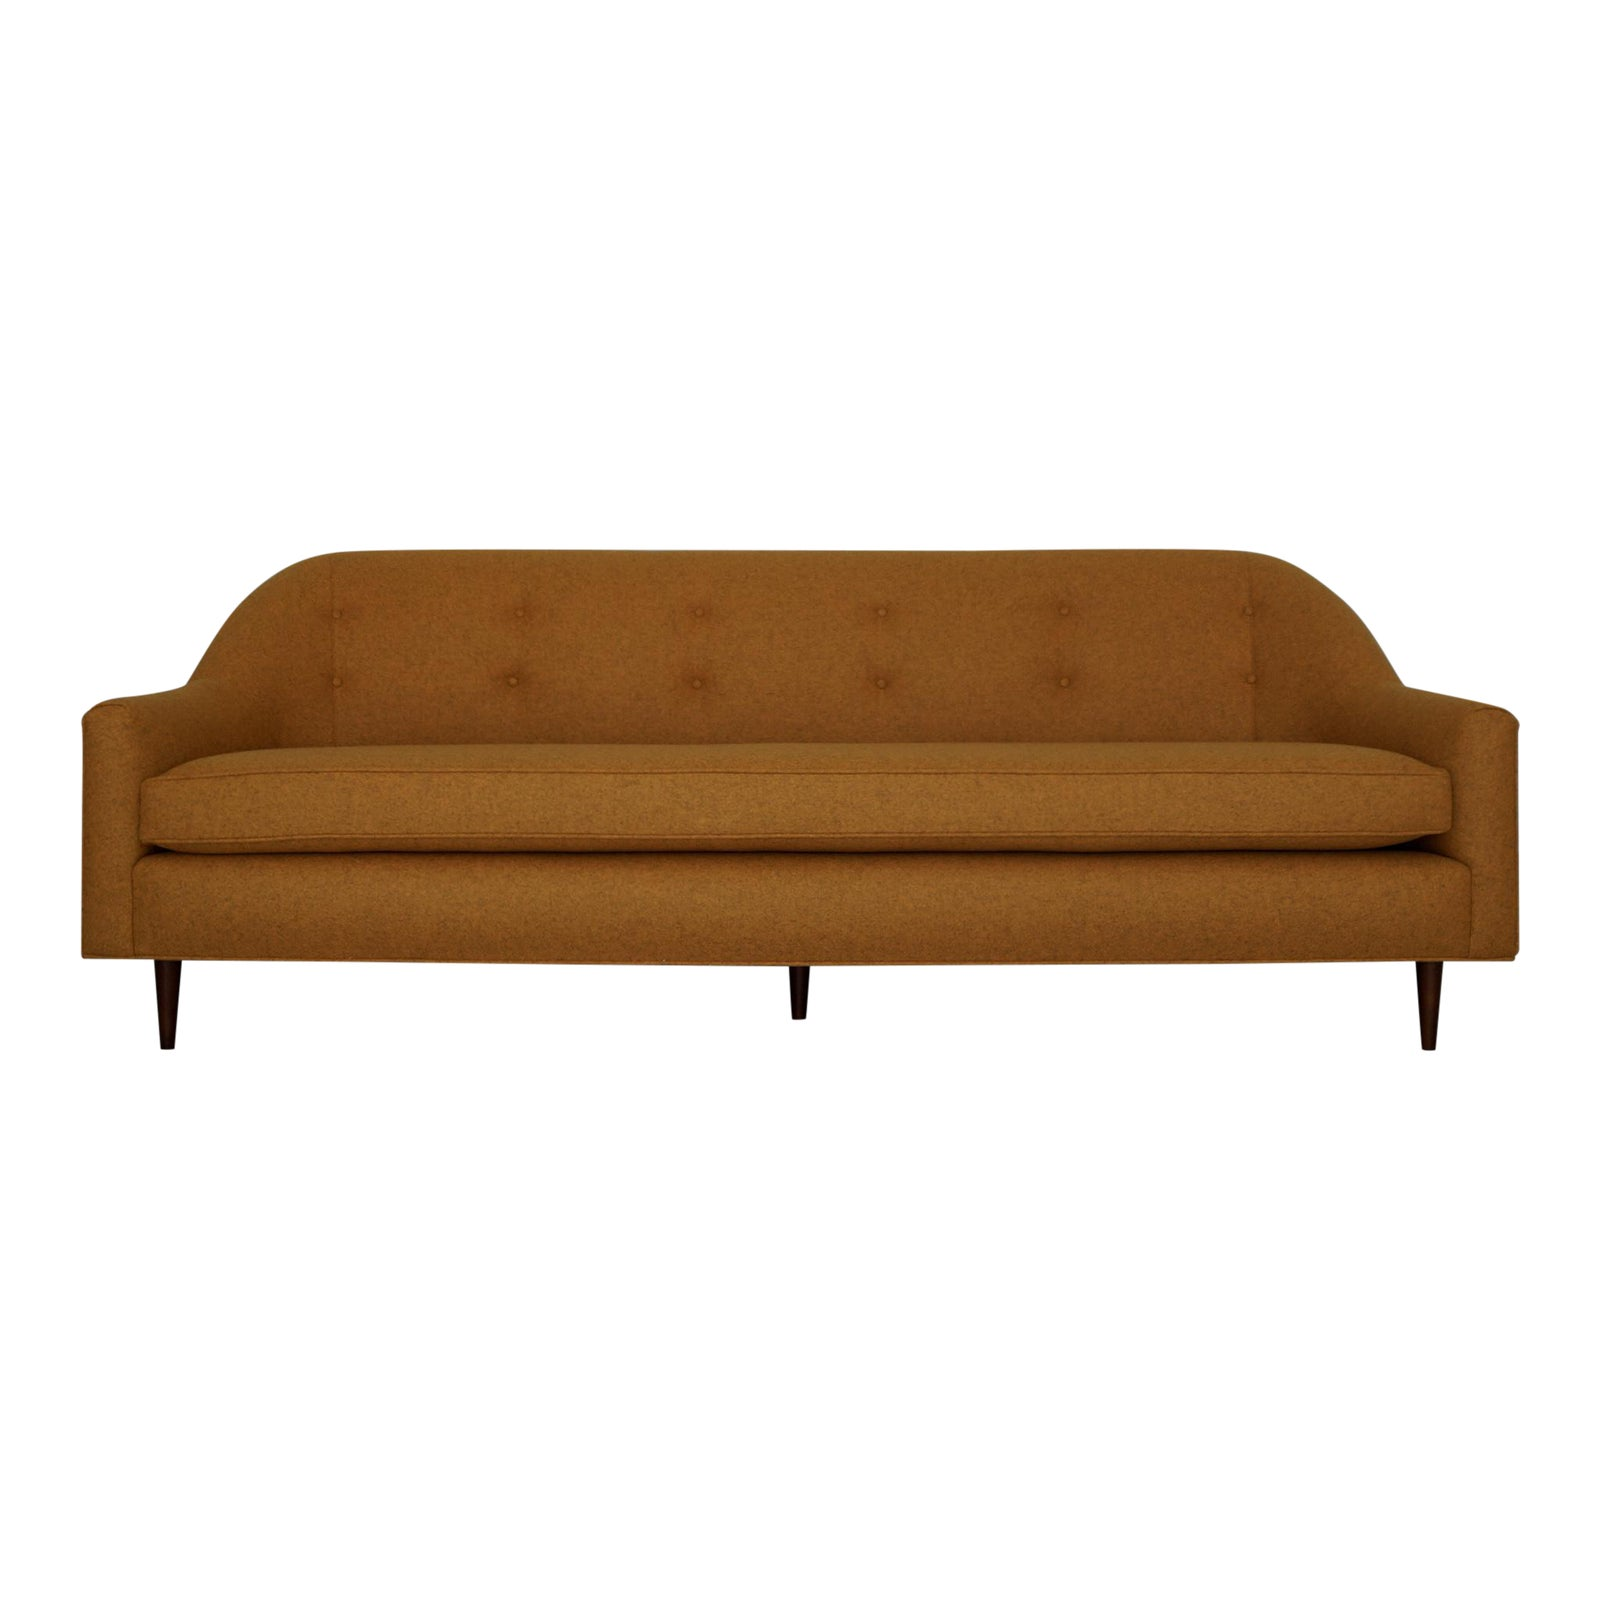 Mid-Century Modern Sofa Reupholstered in Orange Wool